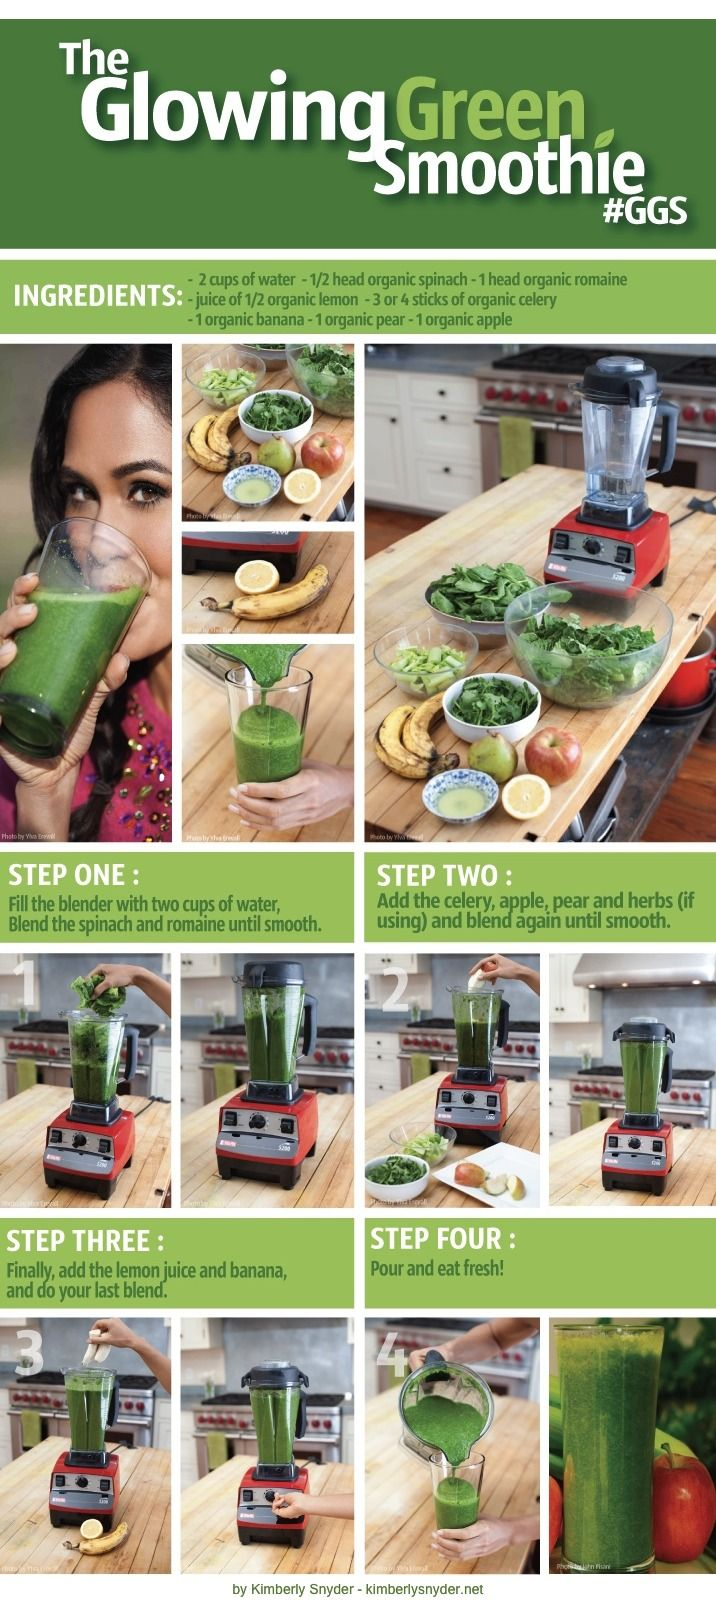 The Glowing Green Smoothie by Kimberly Snyder